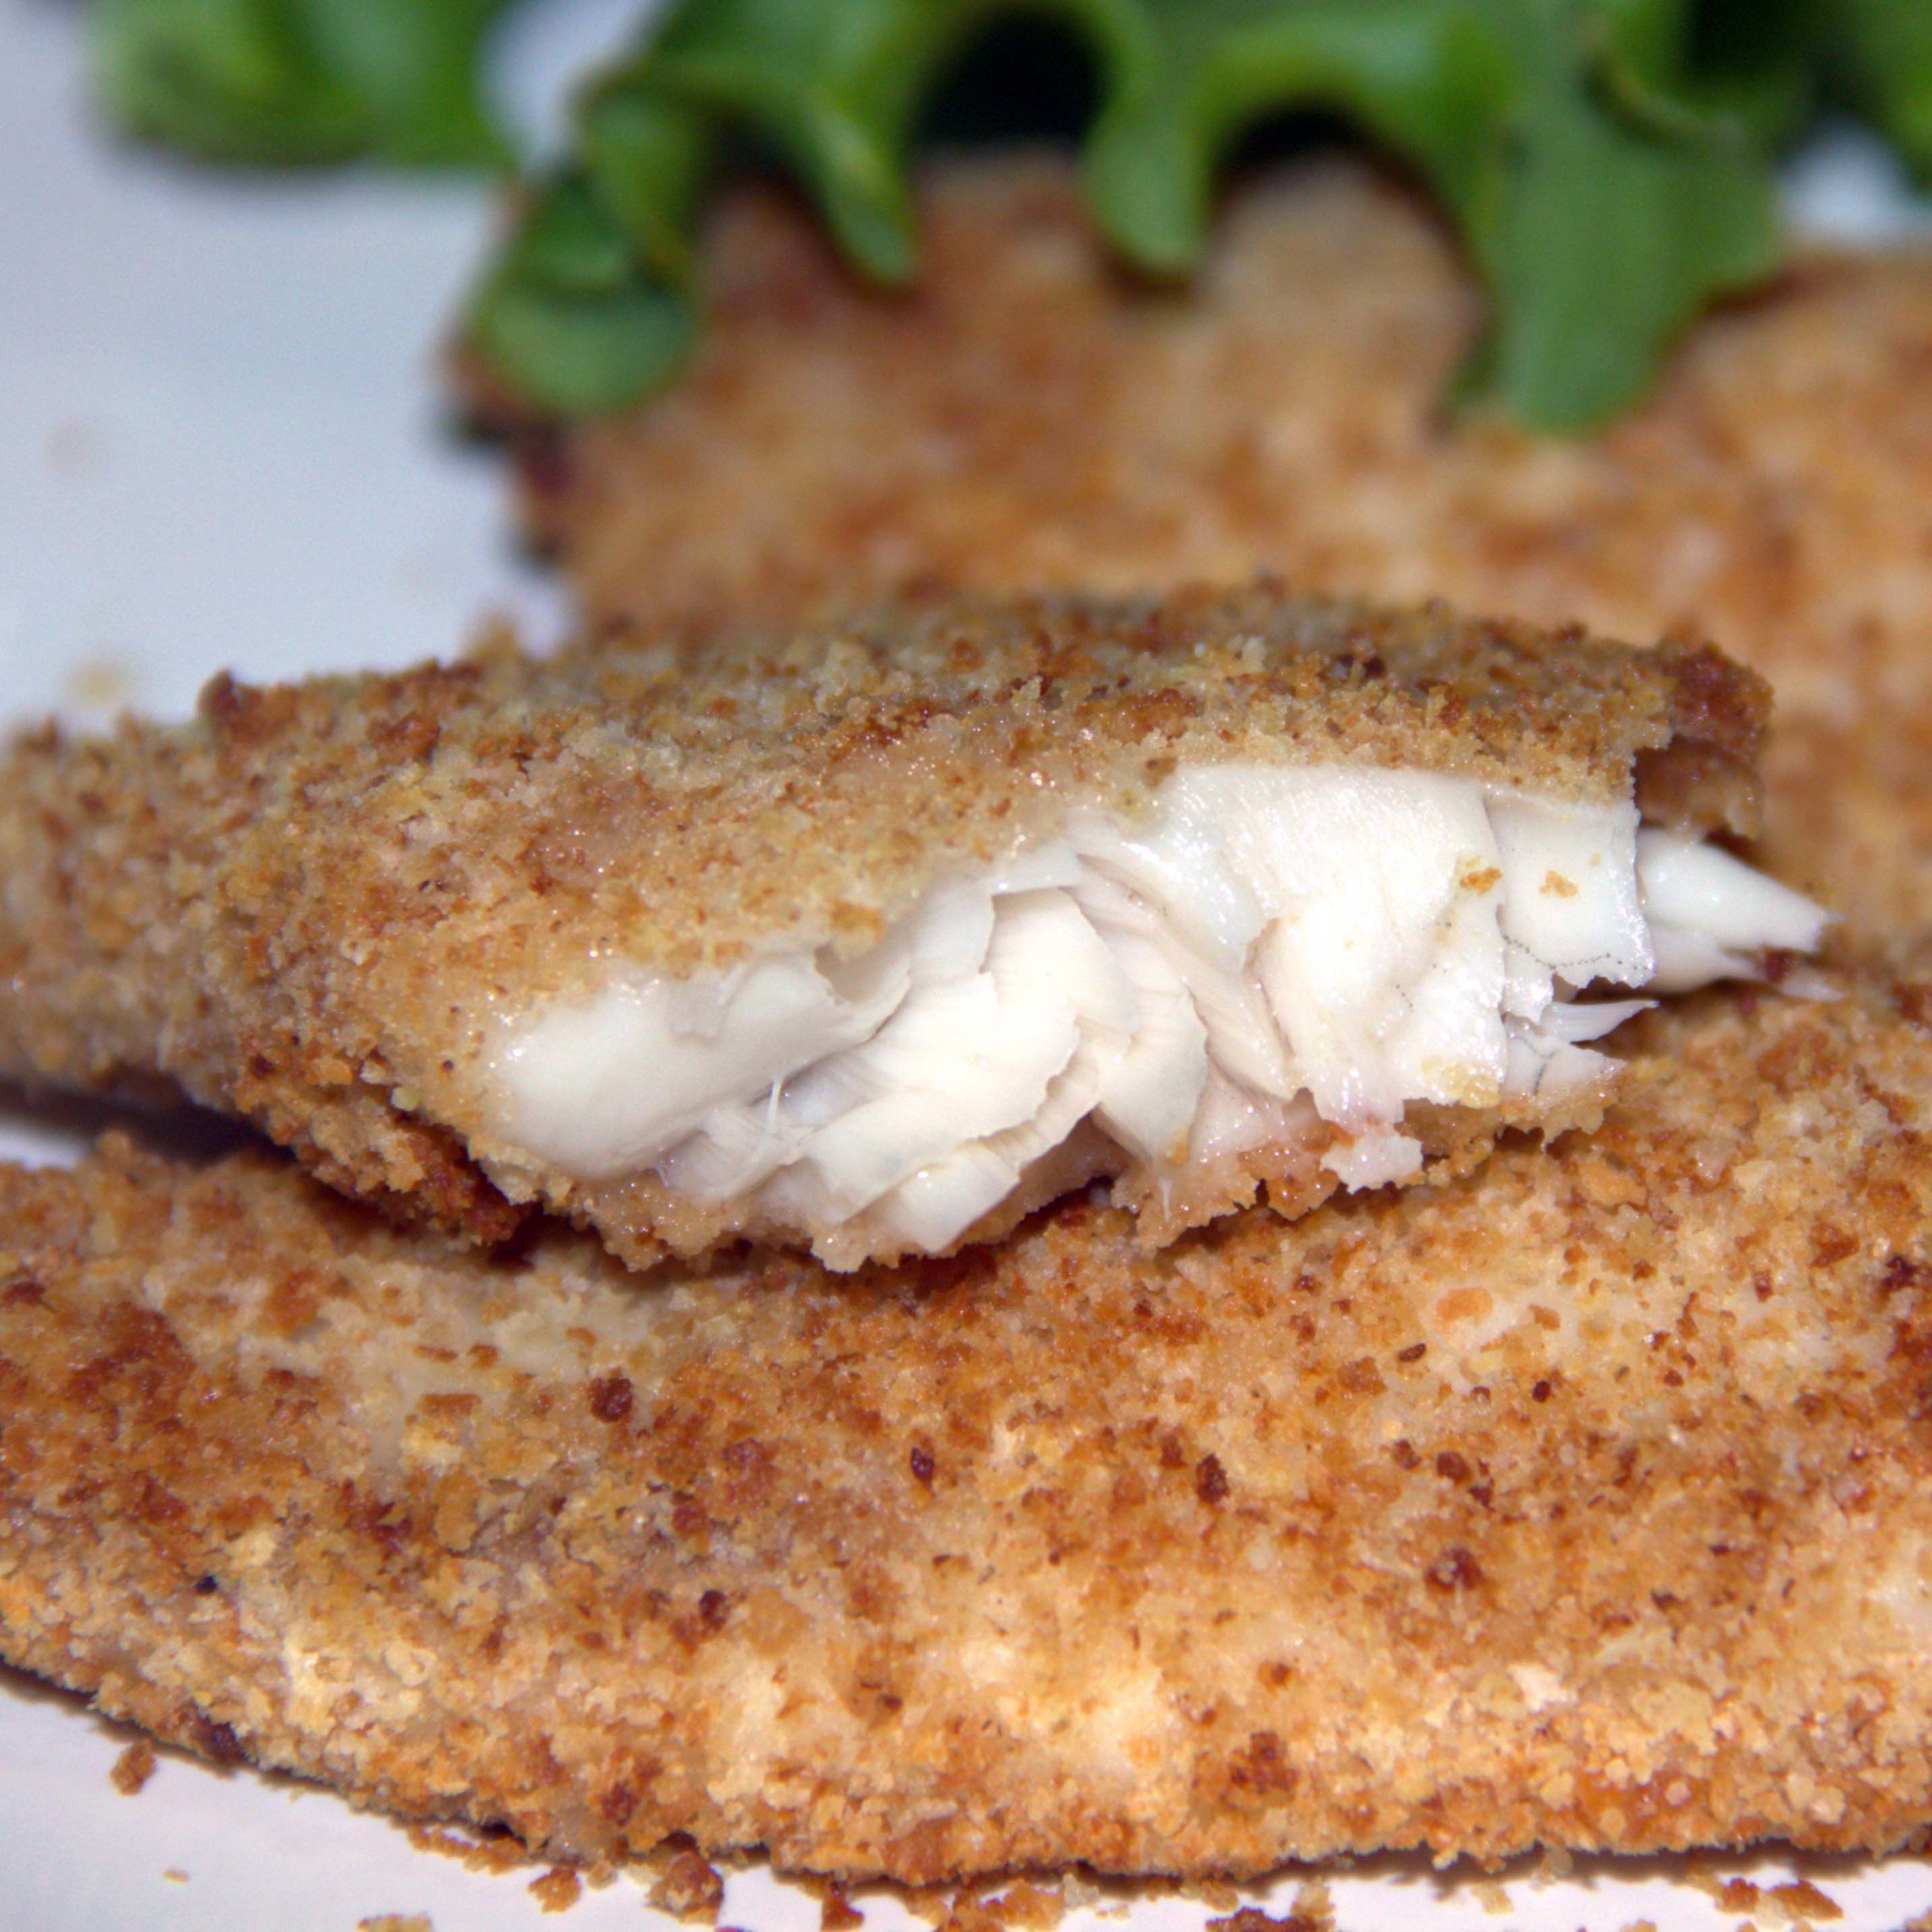 Air Fried Crumbed Fish Recipe Air fryer recipes, Power